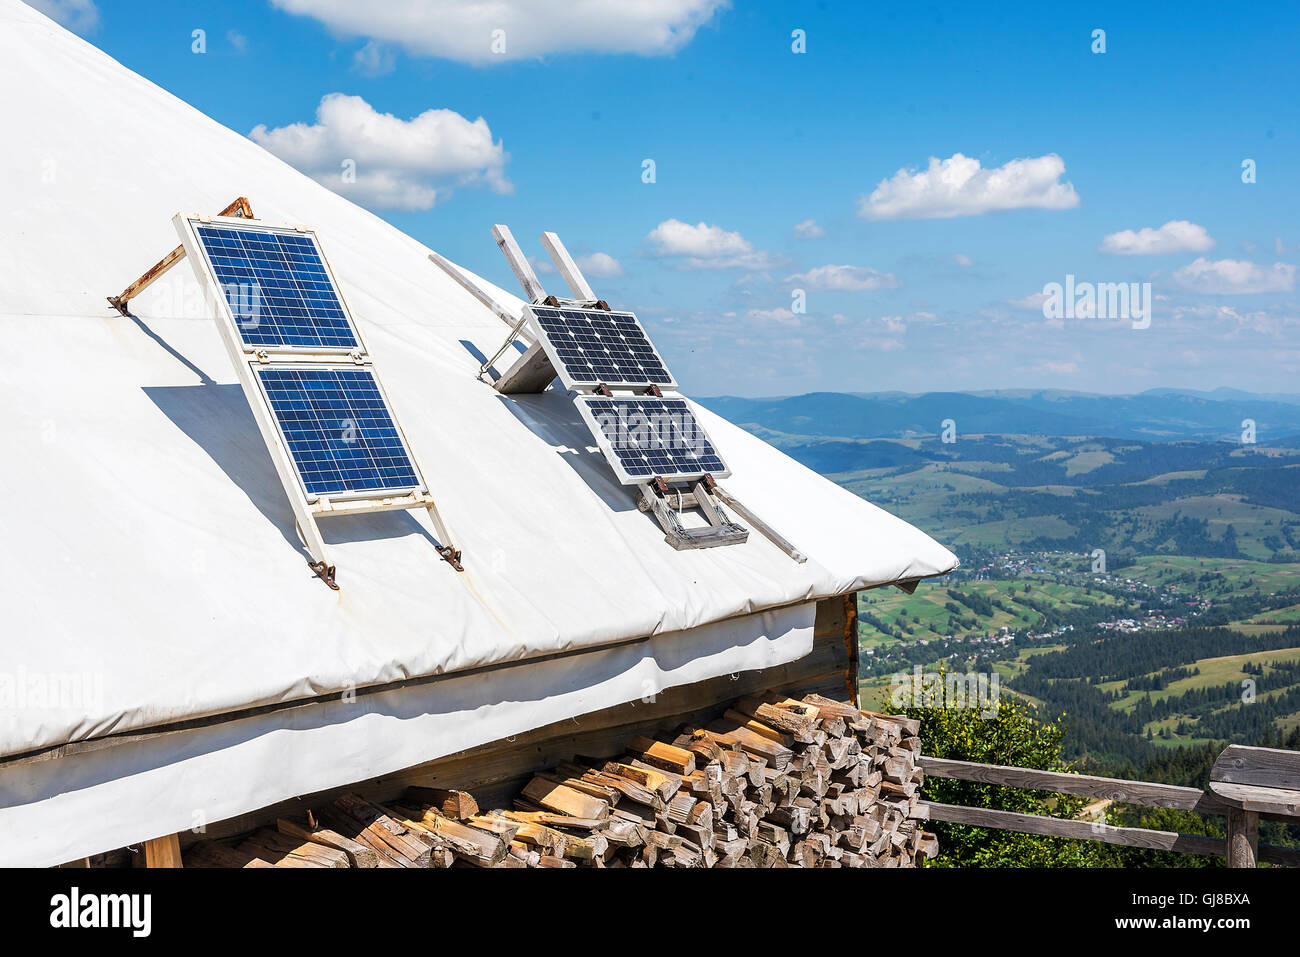 Portable solar panels on the roof of a house in the mountains. Stock Photo